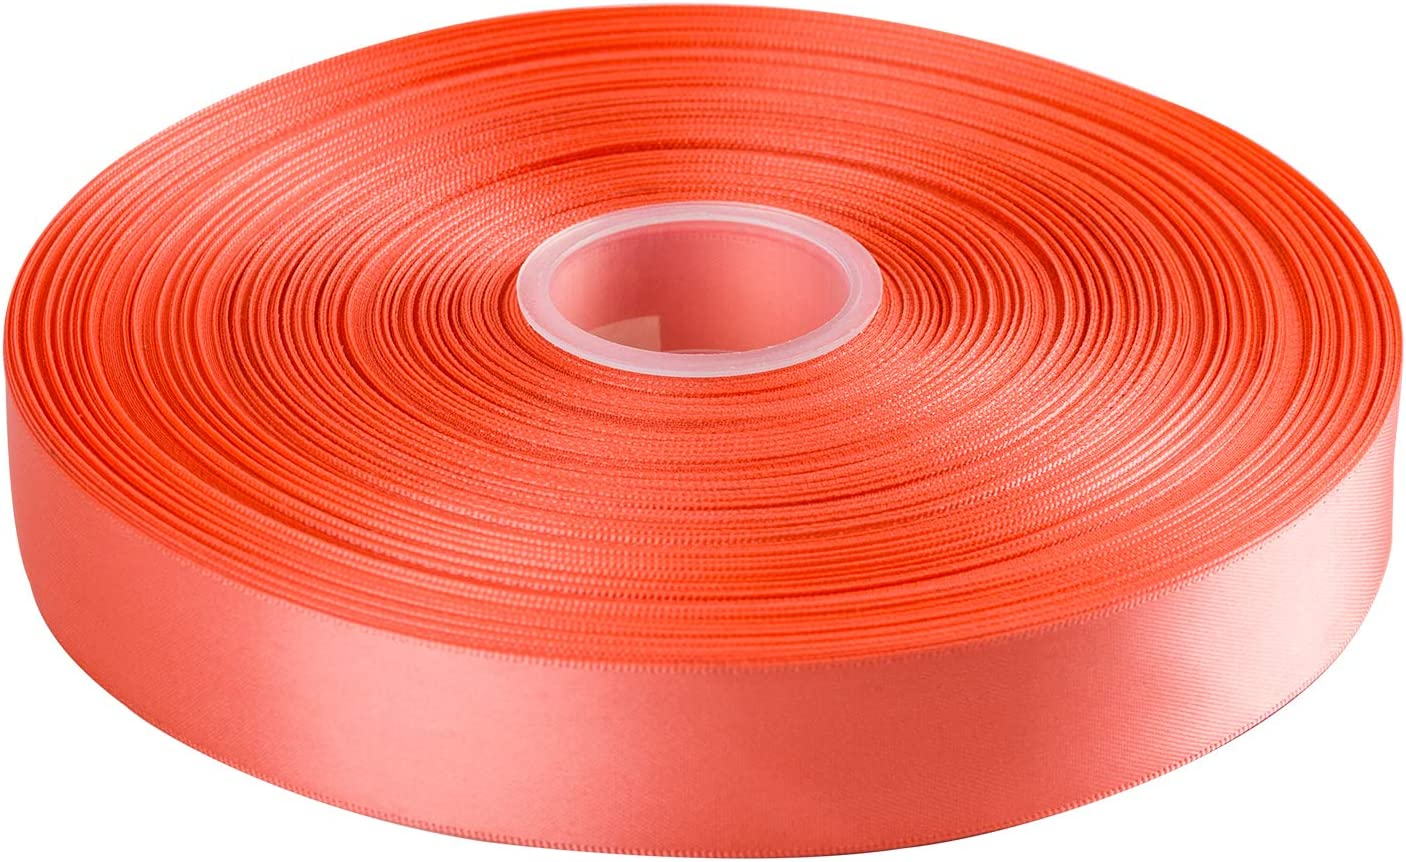 Hair Bow Gift Wrapping Coral LaRibbons 50 Yards 1 Double Face Satin Ribbon for Craft 238 Lt Wedding Deco